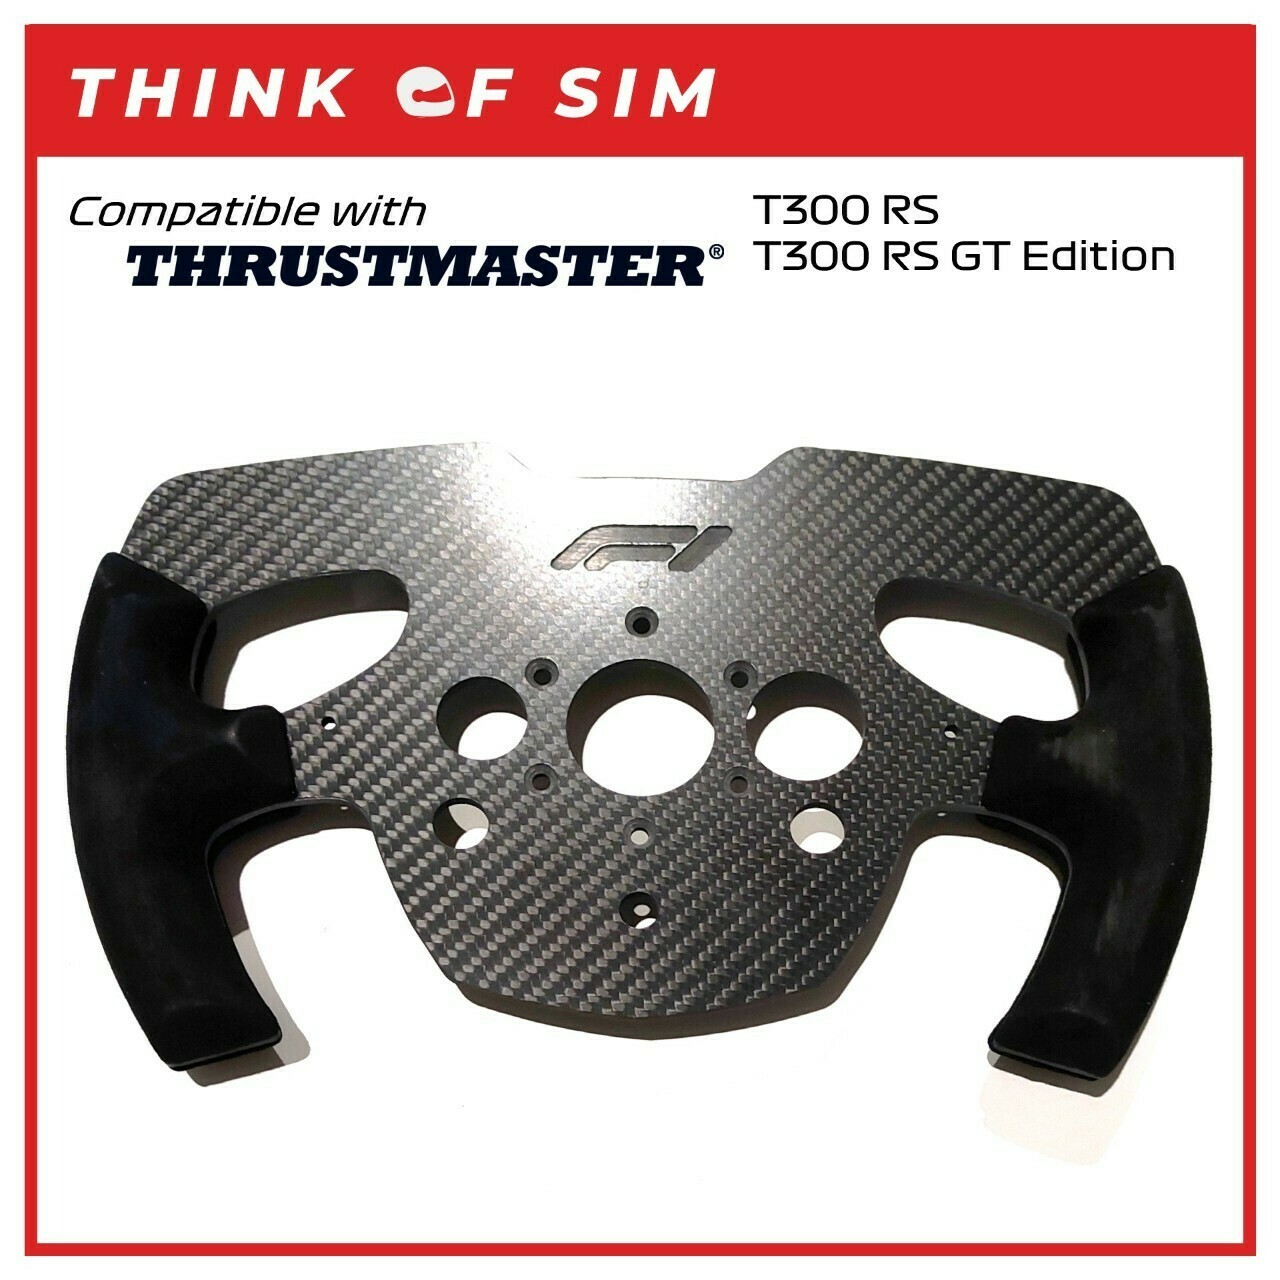 Formula One F1 Wheel Add-On Mod for Thrustmaster T300 RS T300 RS GT